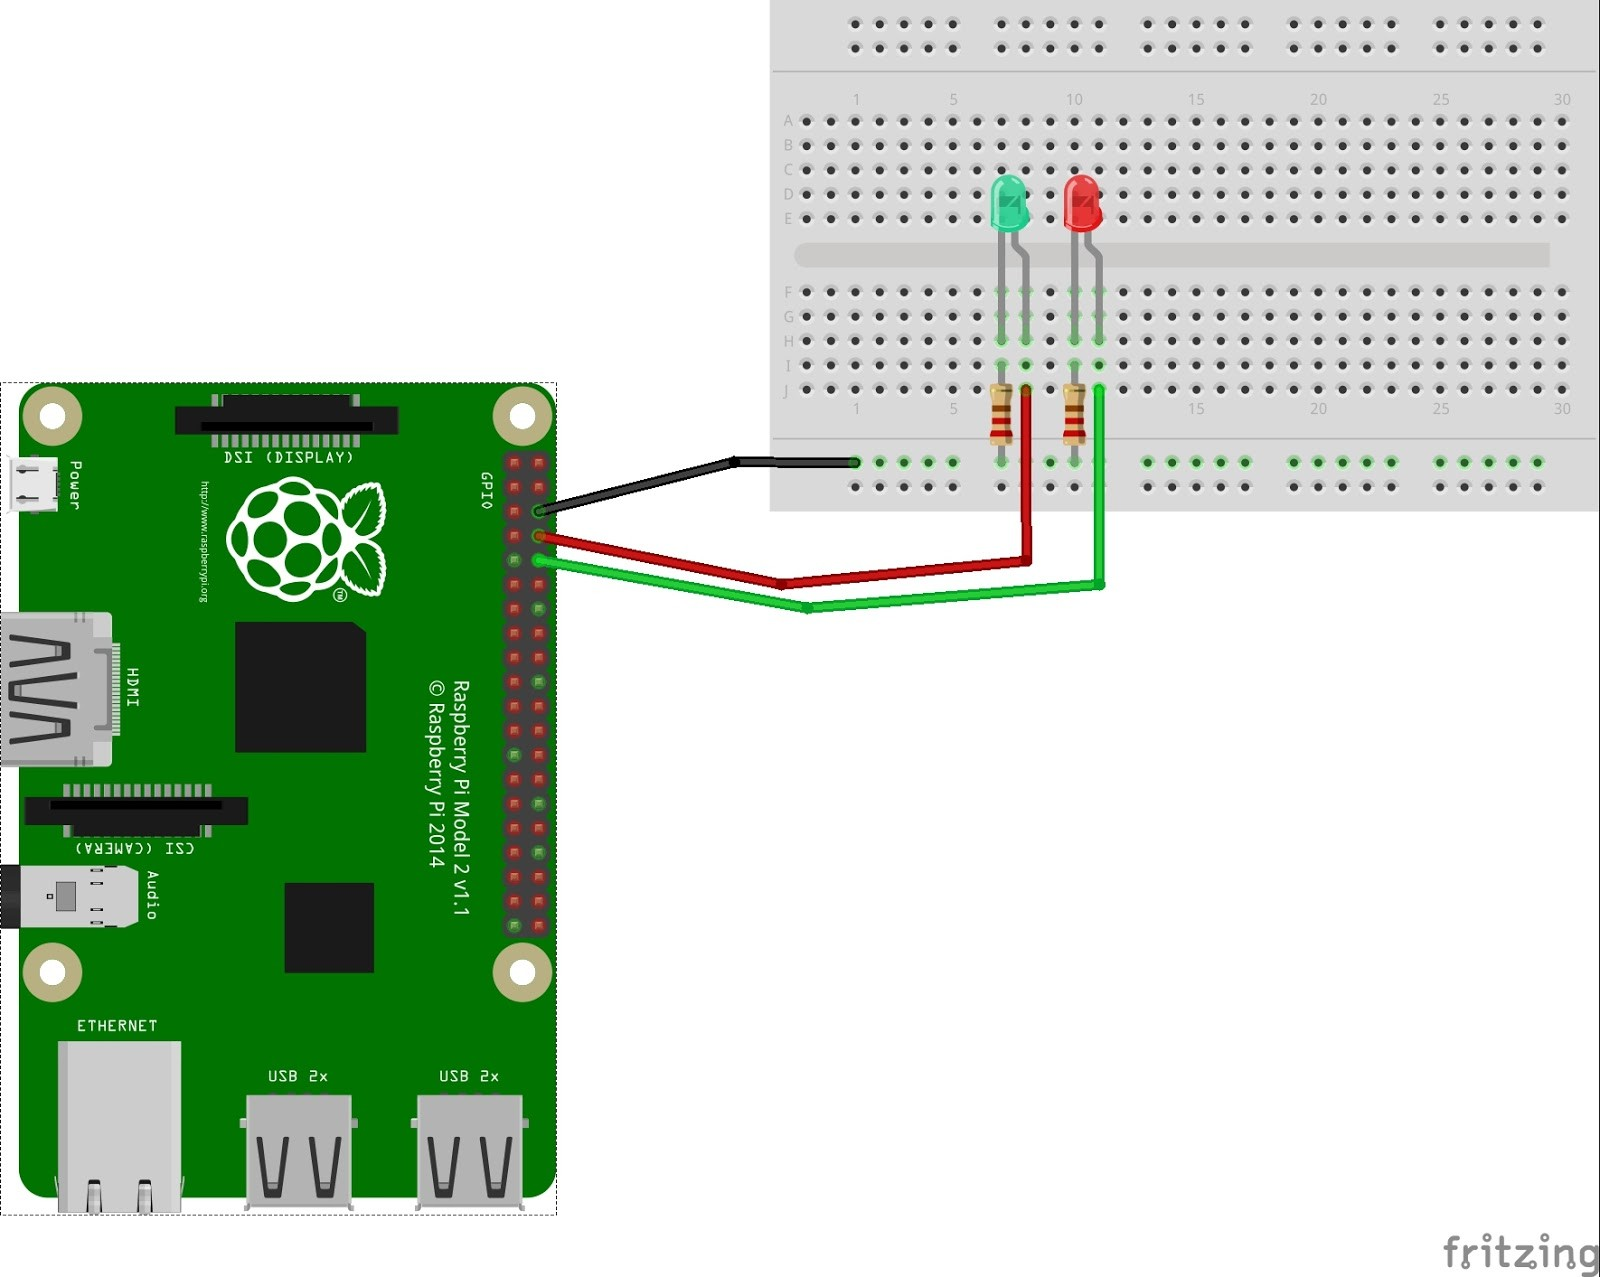 Hook up the Raspberry Pi to a monitor via the HDMI port on the board